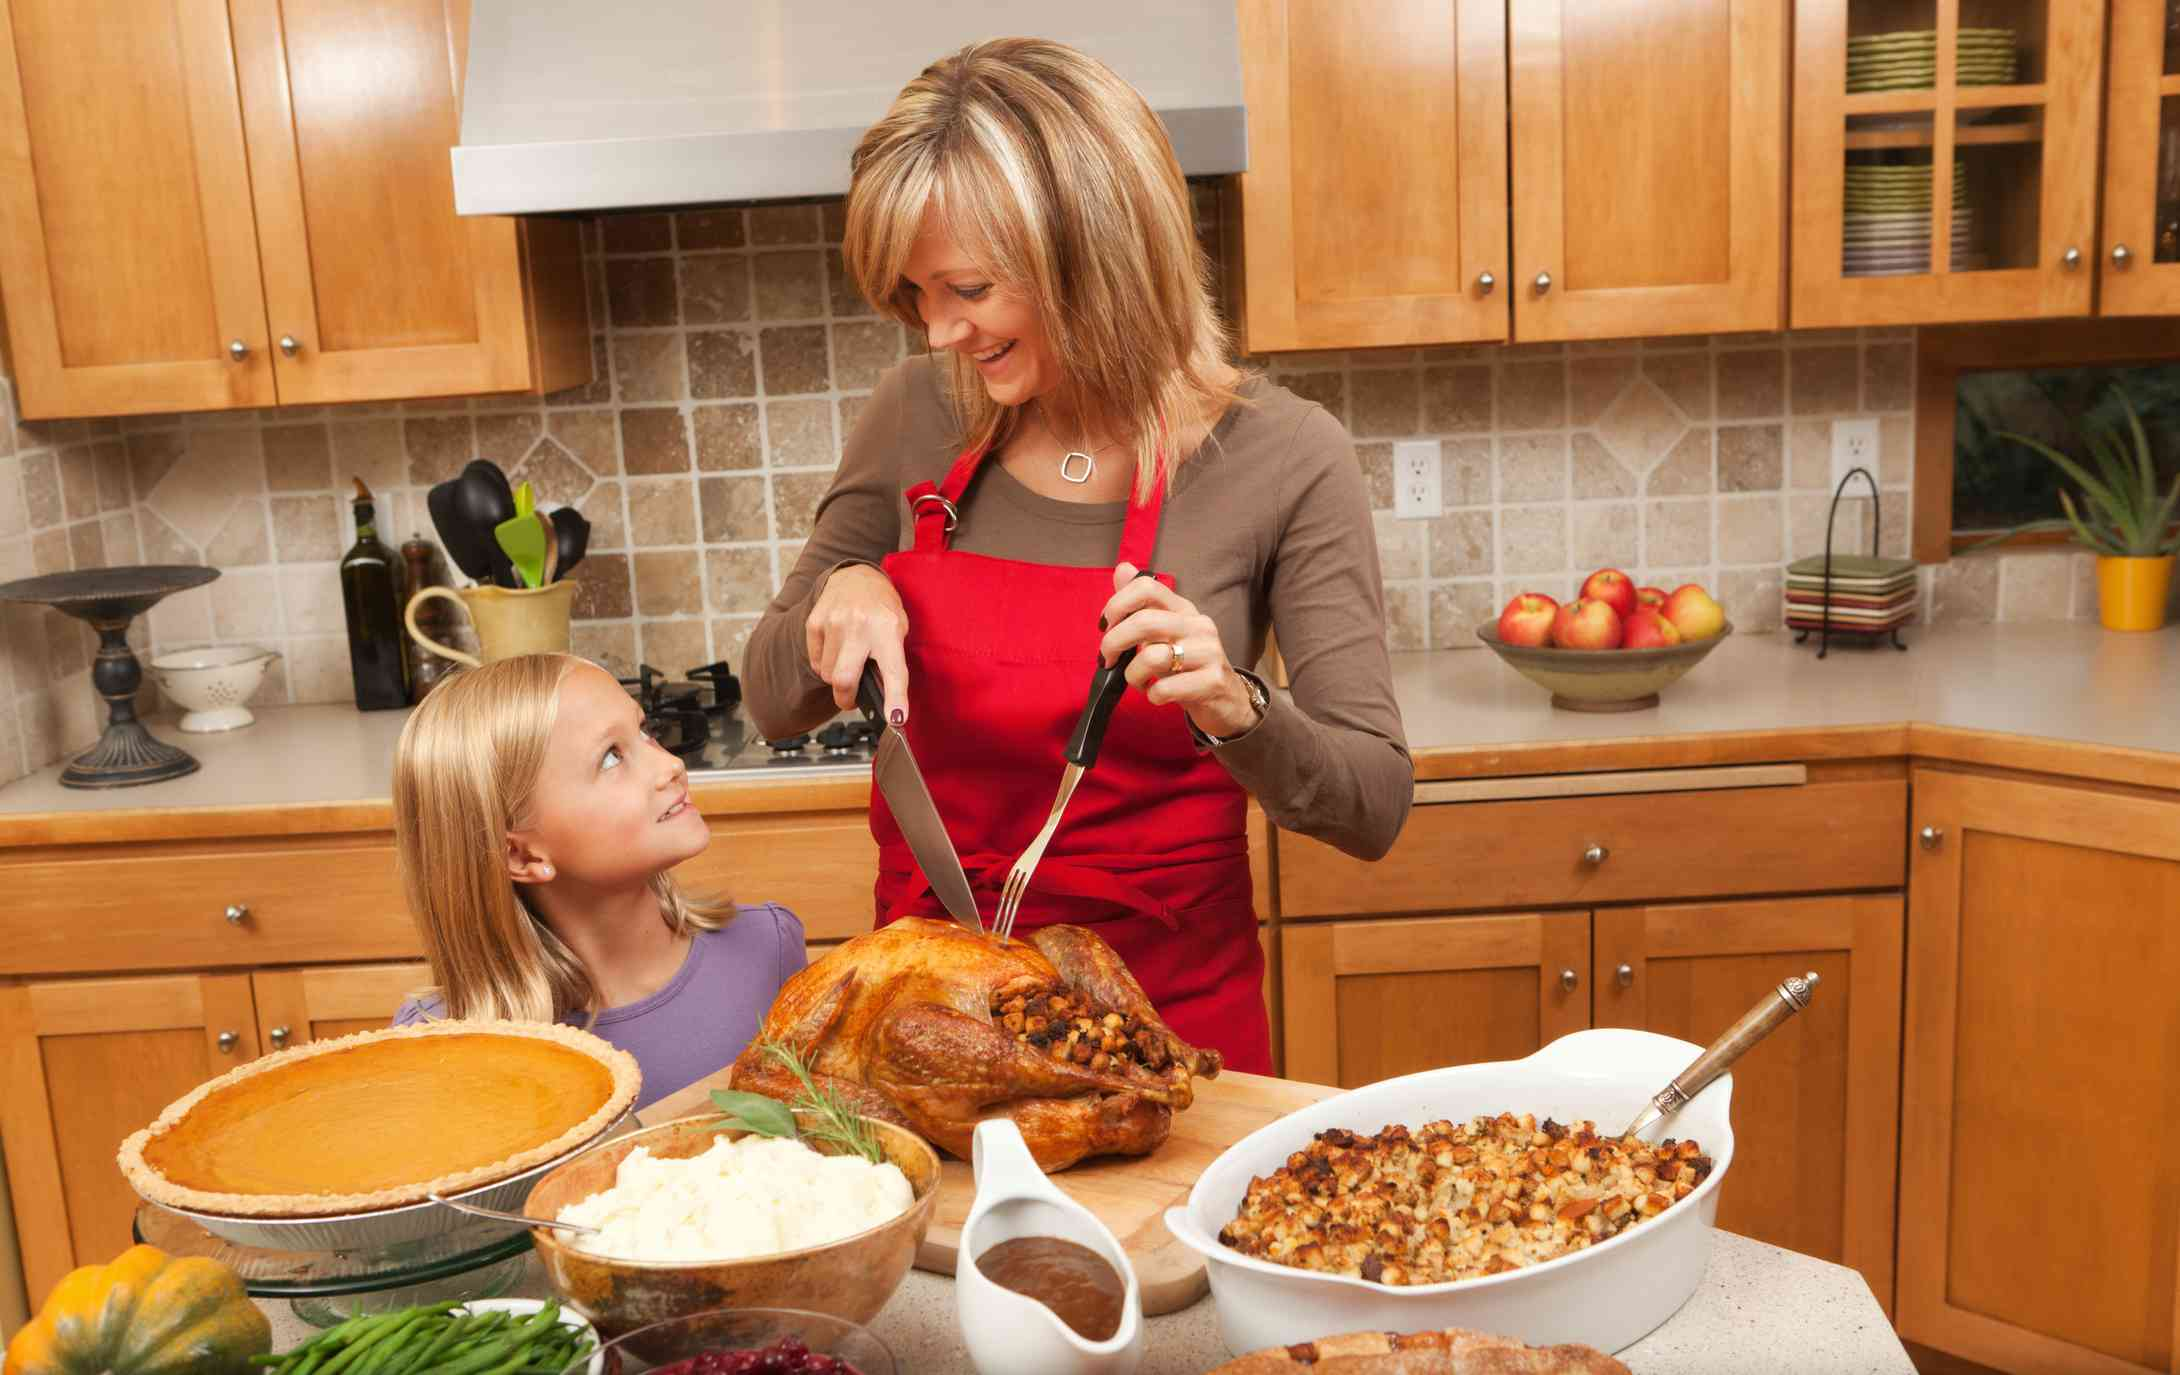 A mother and daughter carving a turkey in the kitchen